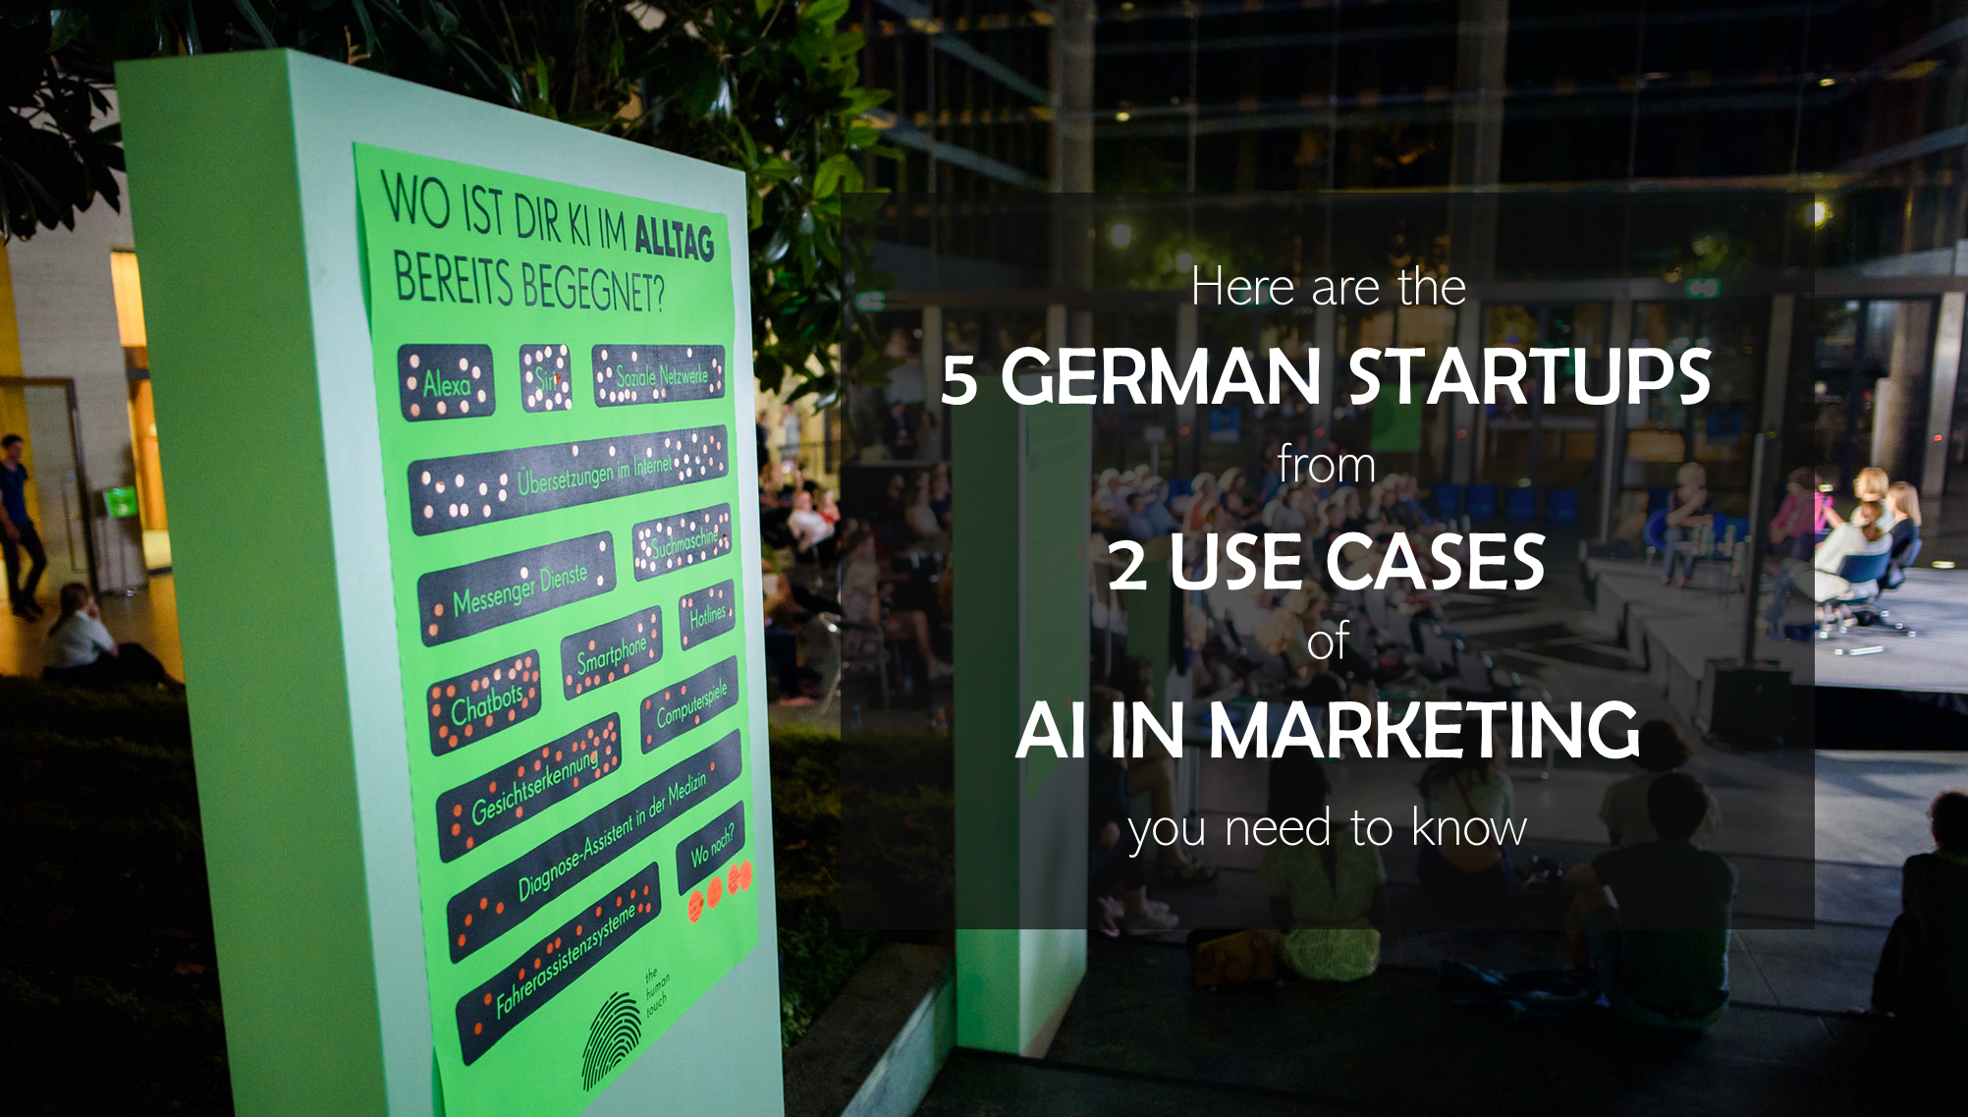 5 German Startups from 2 Use cases of AI in Marketing